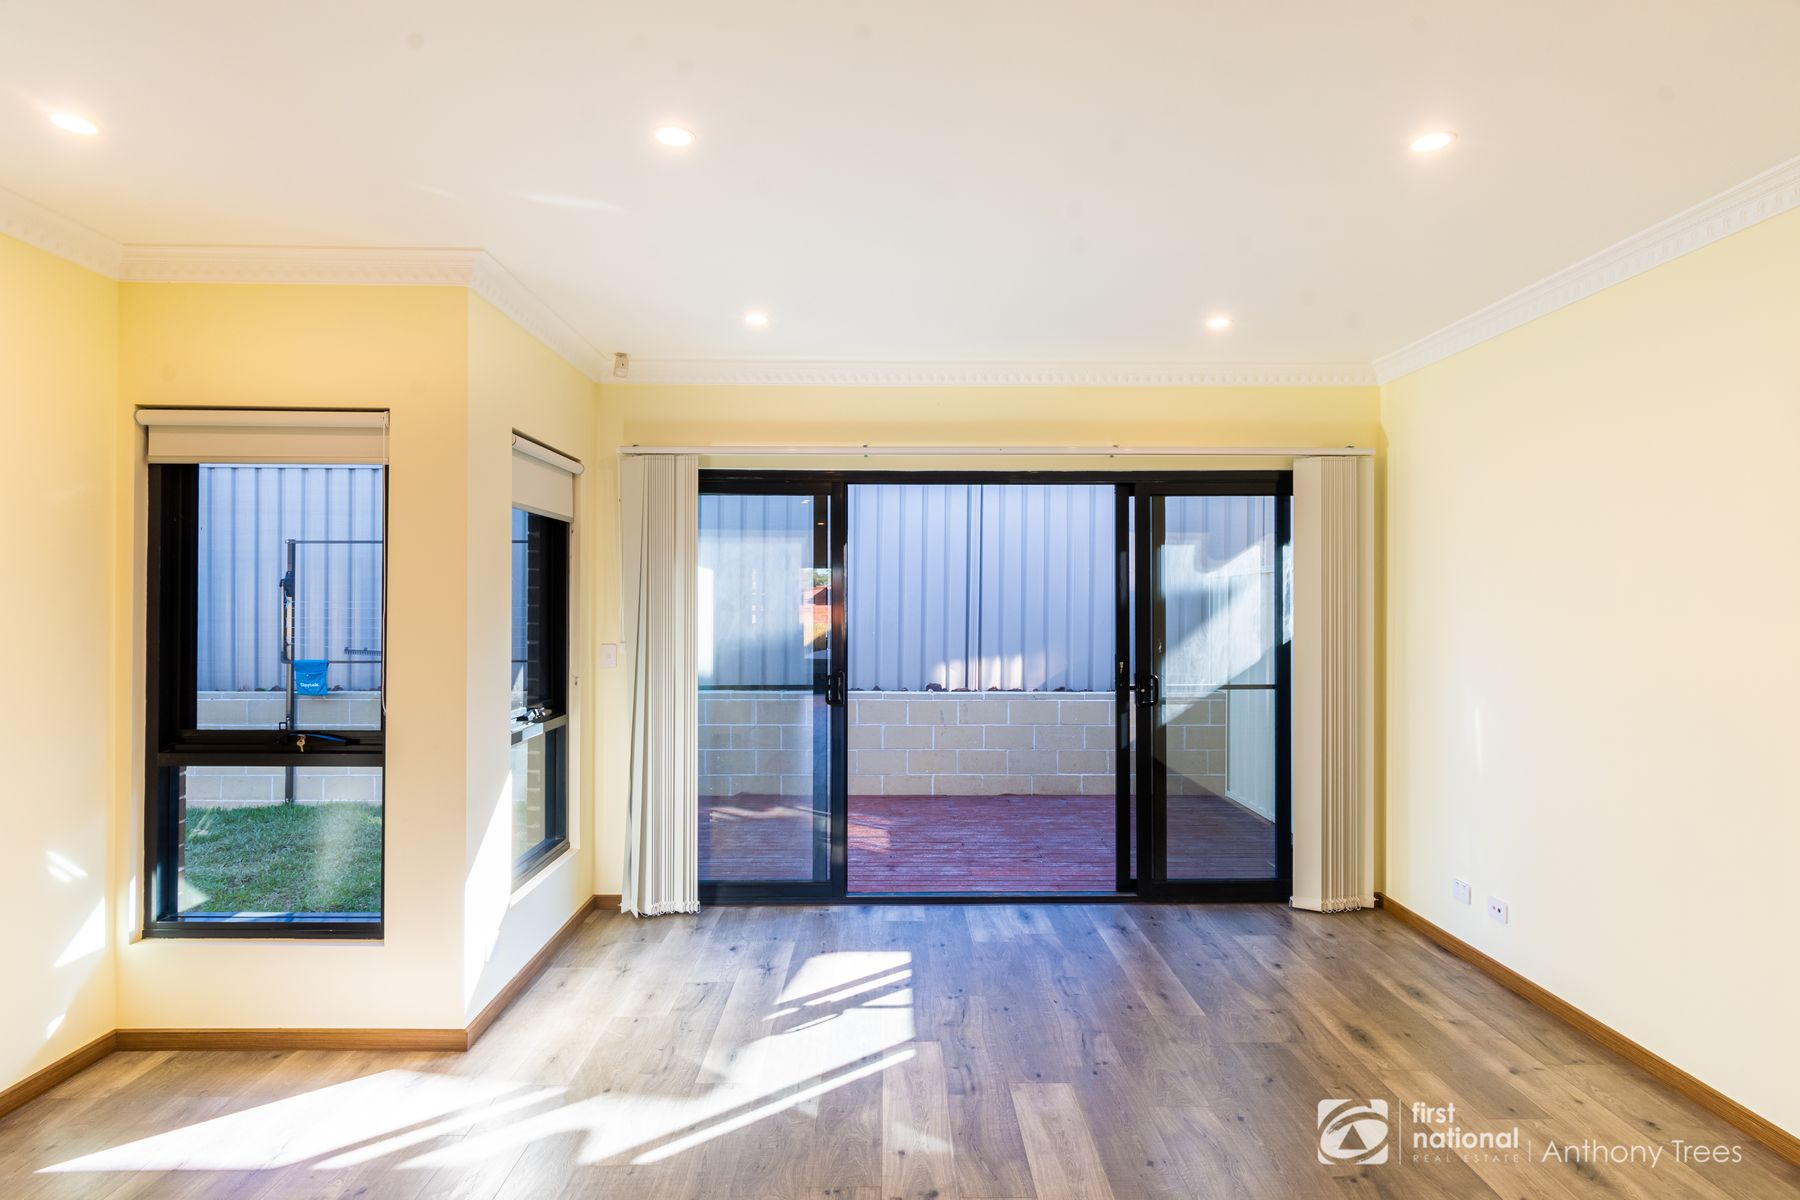 3/61 Winbourne, West Ryde, NSW 2114